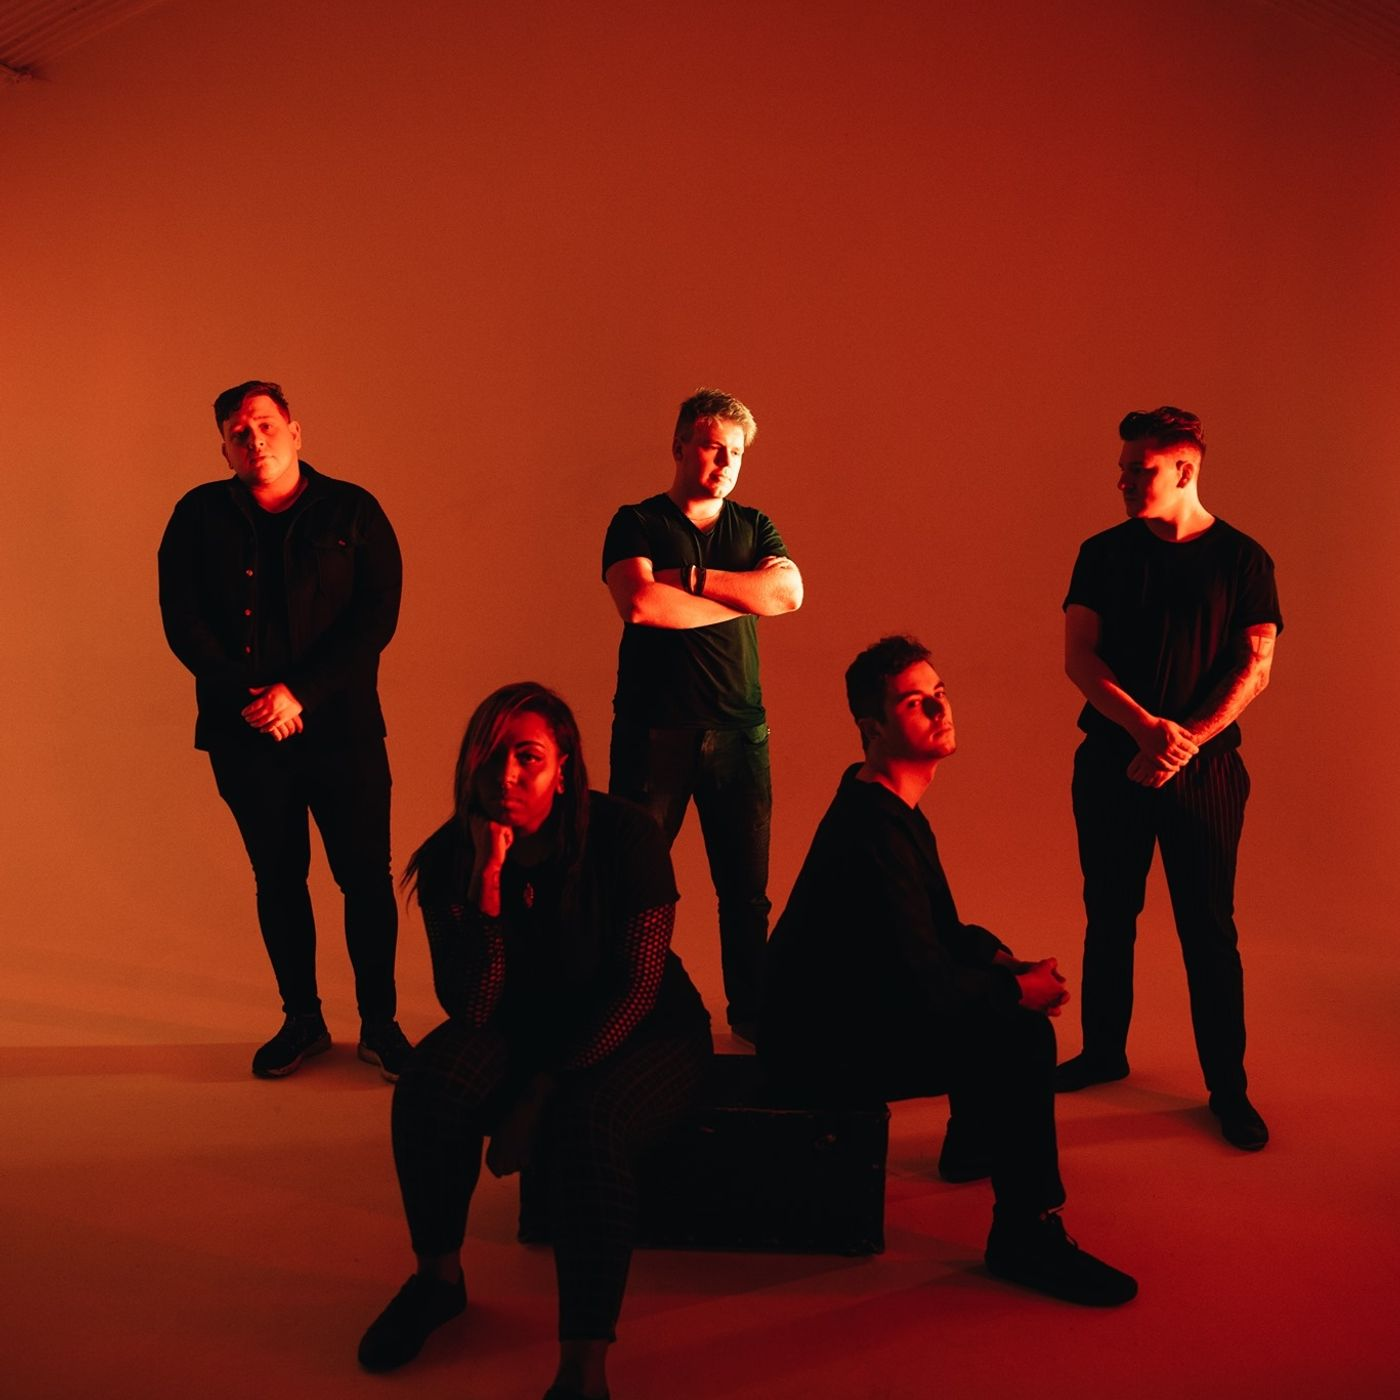 The Defences One: Defences interview and an international music mix